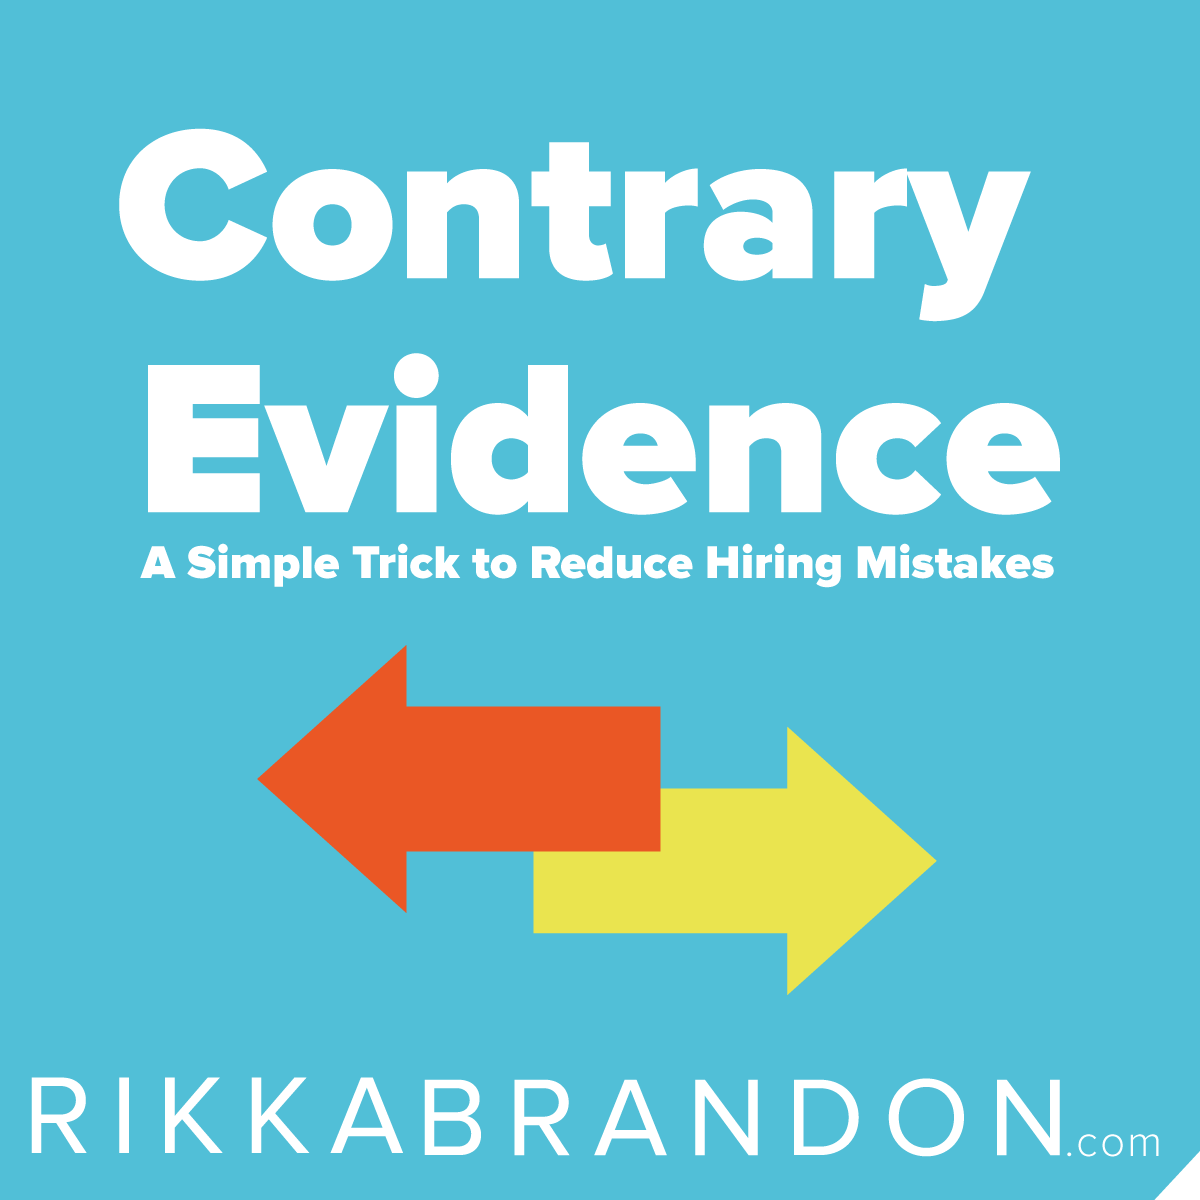 Use the Contrary Evidence Interviewing Technique to help you avoid hiring mistakes.  Learn how here http://www.rikkabrandon.com/contrary-evidence-trick-use-reduce-hiring-mistakes/